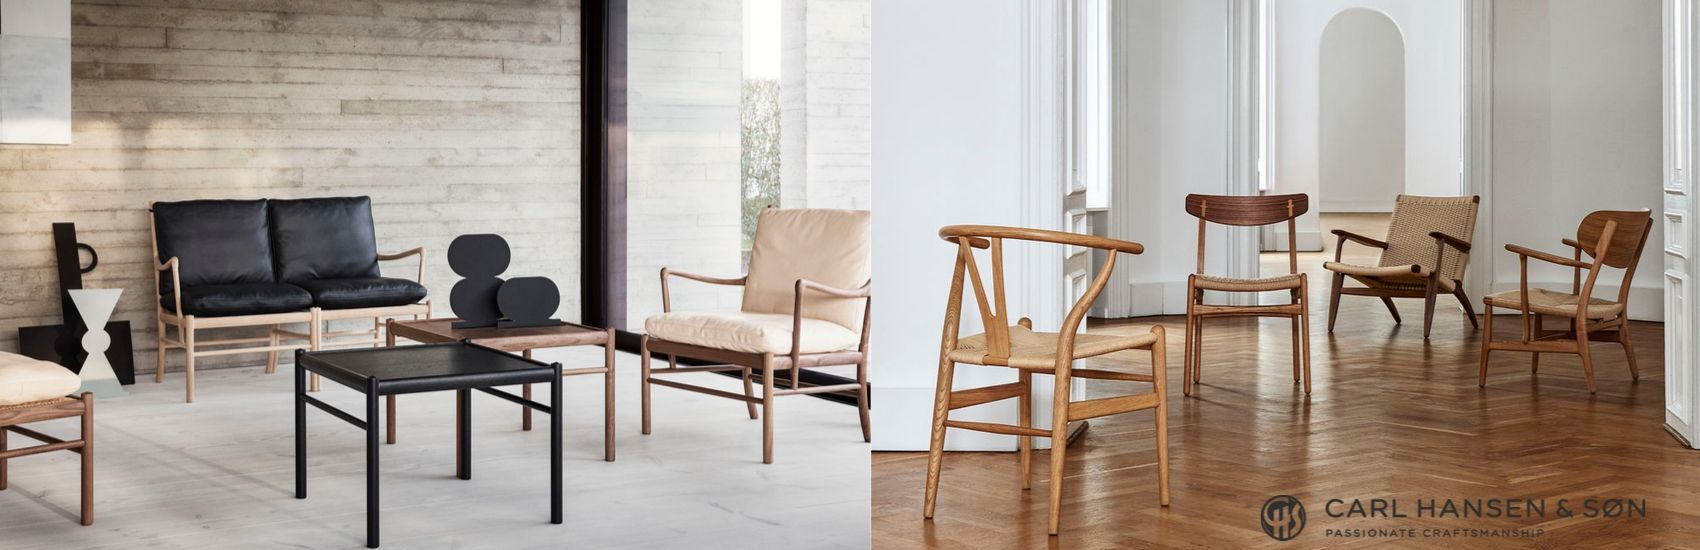 Tal R Series 7 Chairs by Fritz Hansen at Palette and Parlor